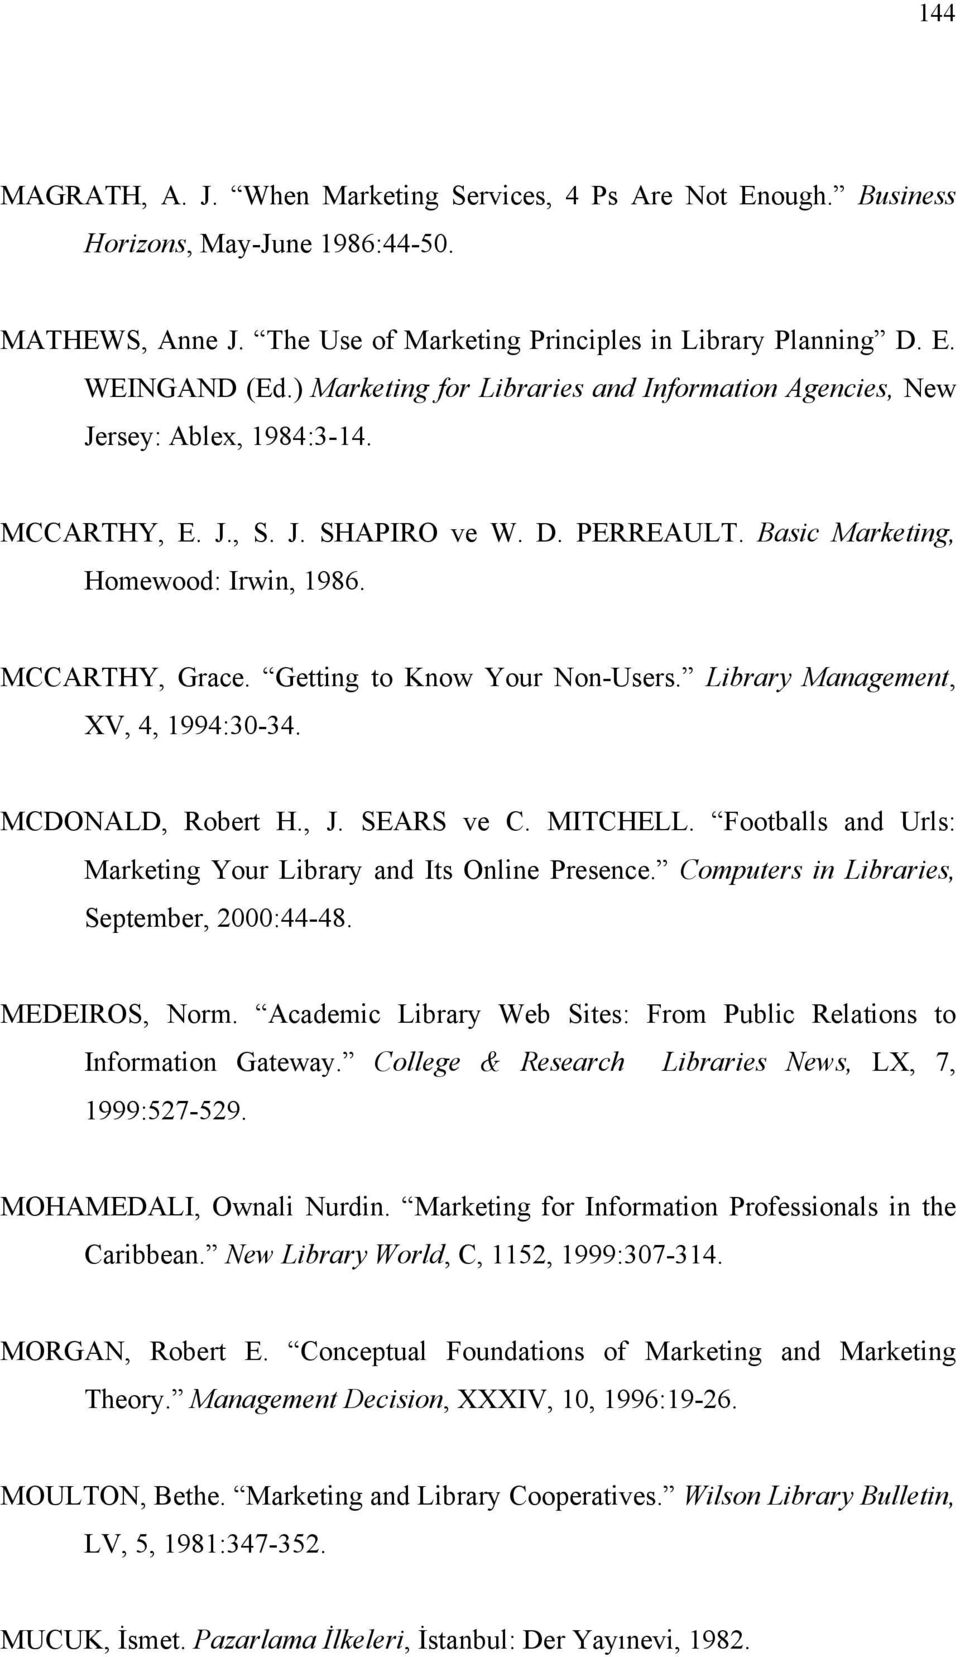 Getting to Know Your Non-Users. Library Management, XV, 4, 1994:30-34. MCDONALD, Robert H., J. SEARS ve C. MITCHELL. Footballs and Urls: Marketing Your Library and Its Online Presence.